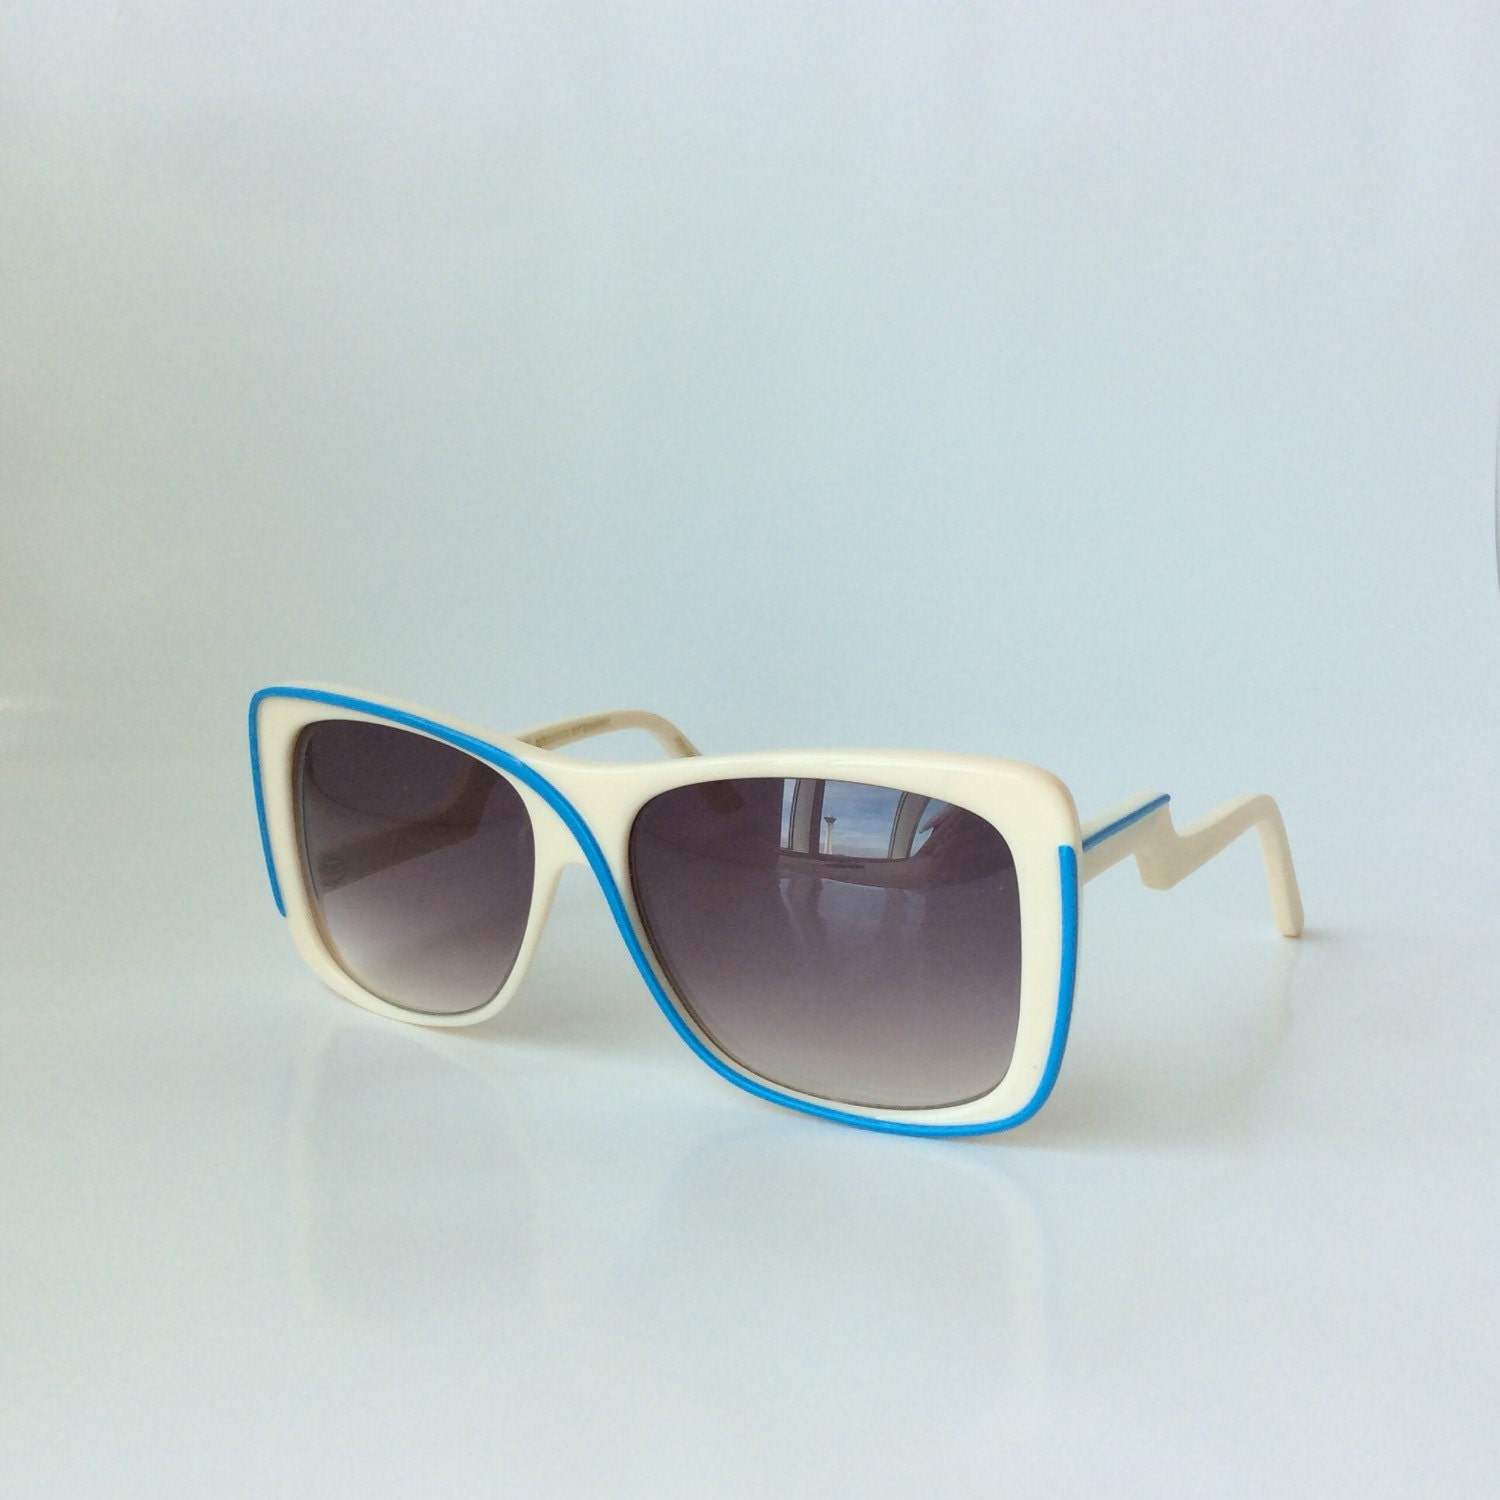 Vintage 70s style sunglasses by Ultra Eyewear Ivory by ...